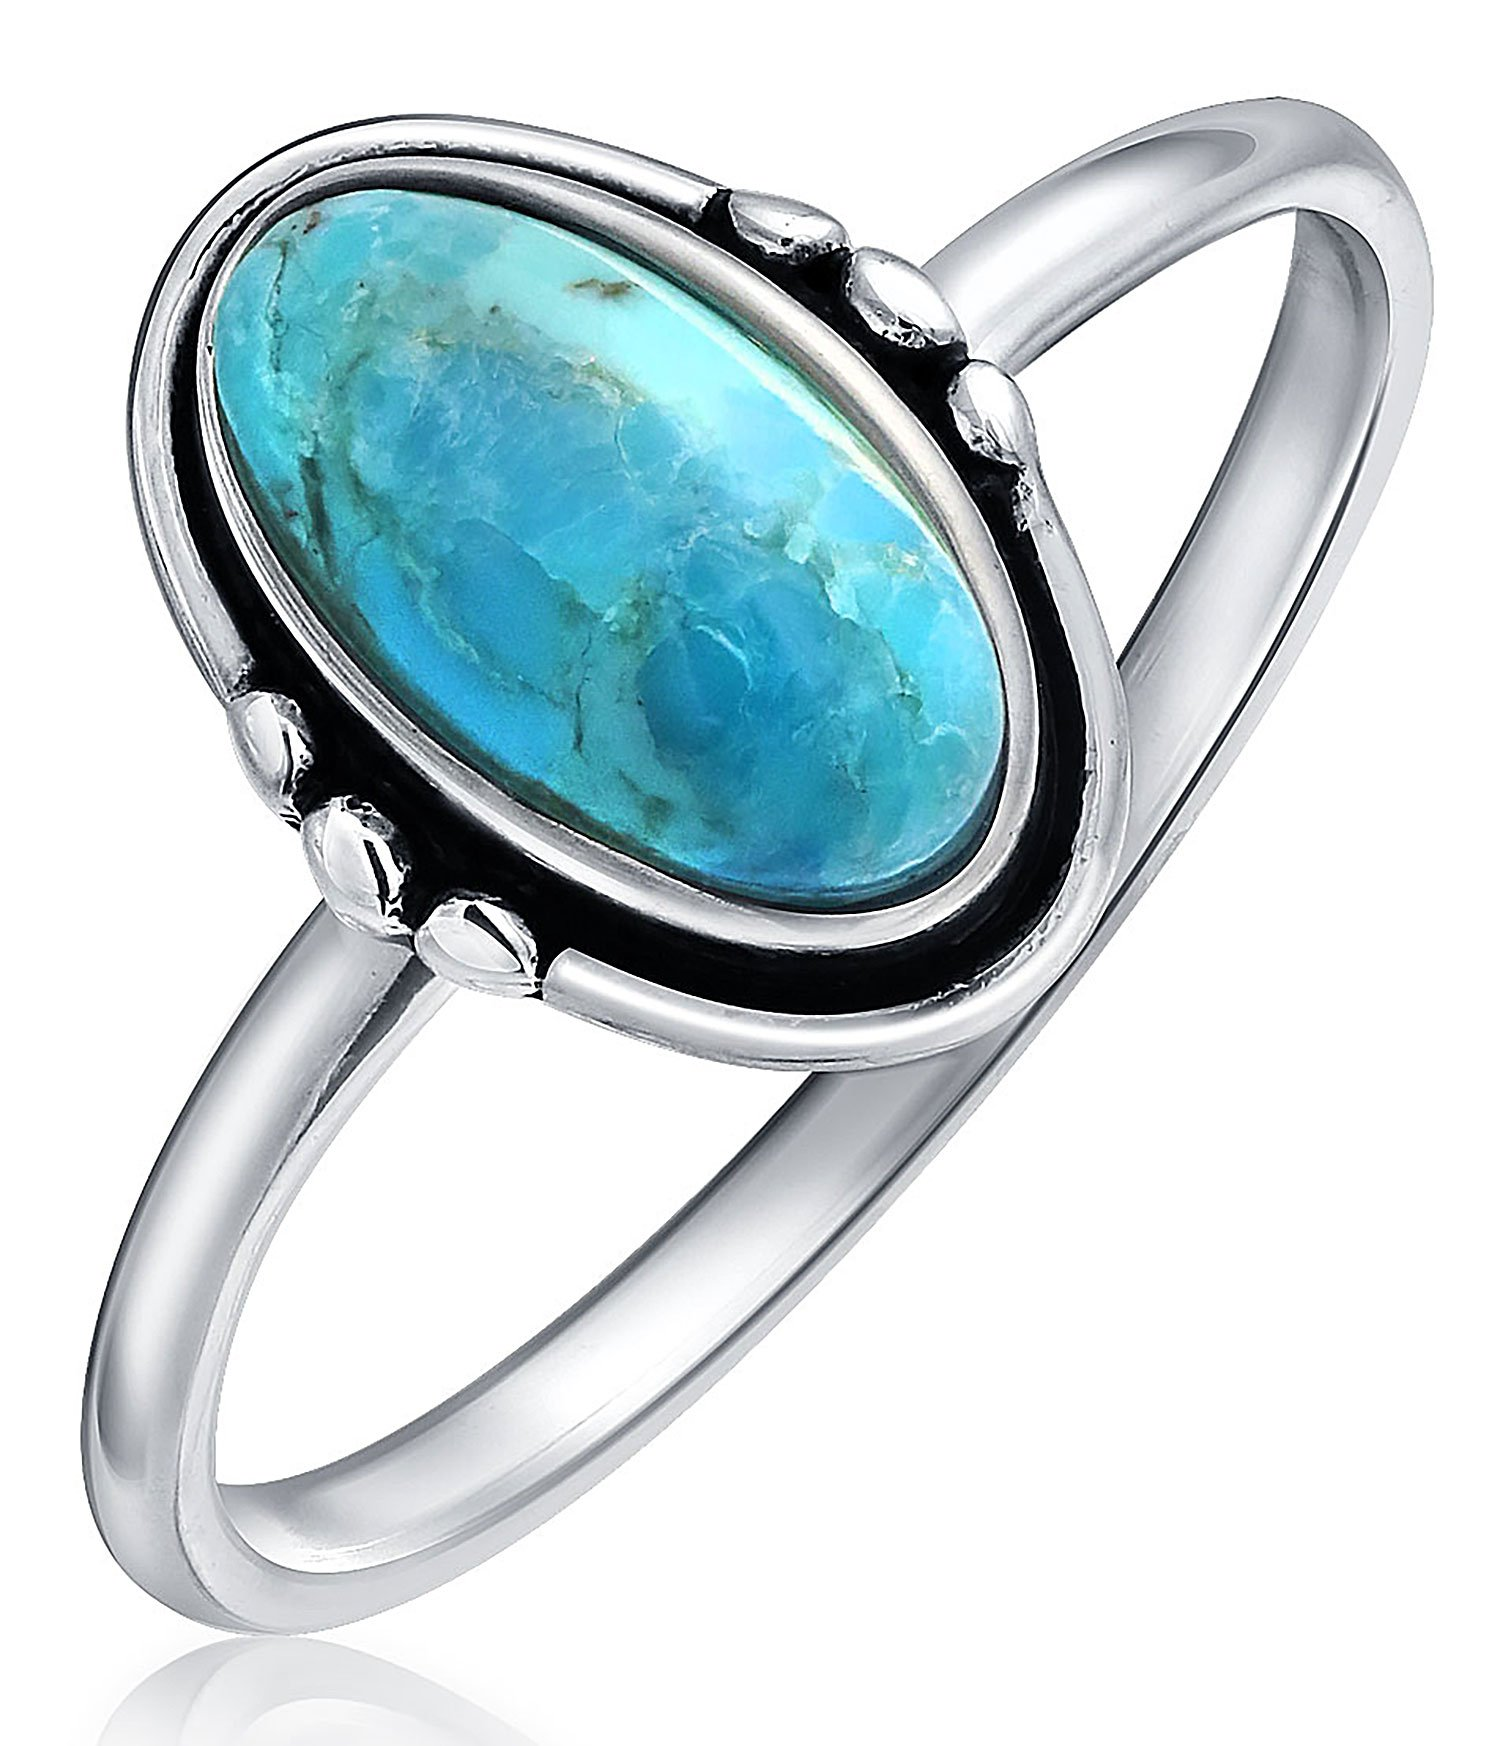 Modern Southwestern Style Oval Natural Turquoise Sterling Silver Ring